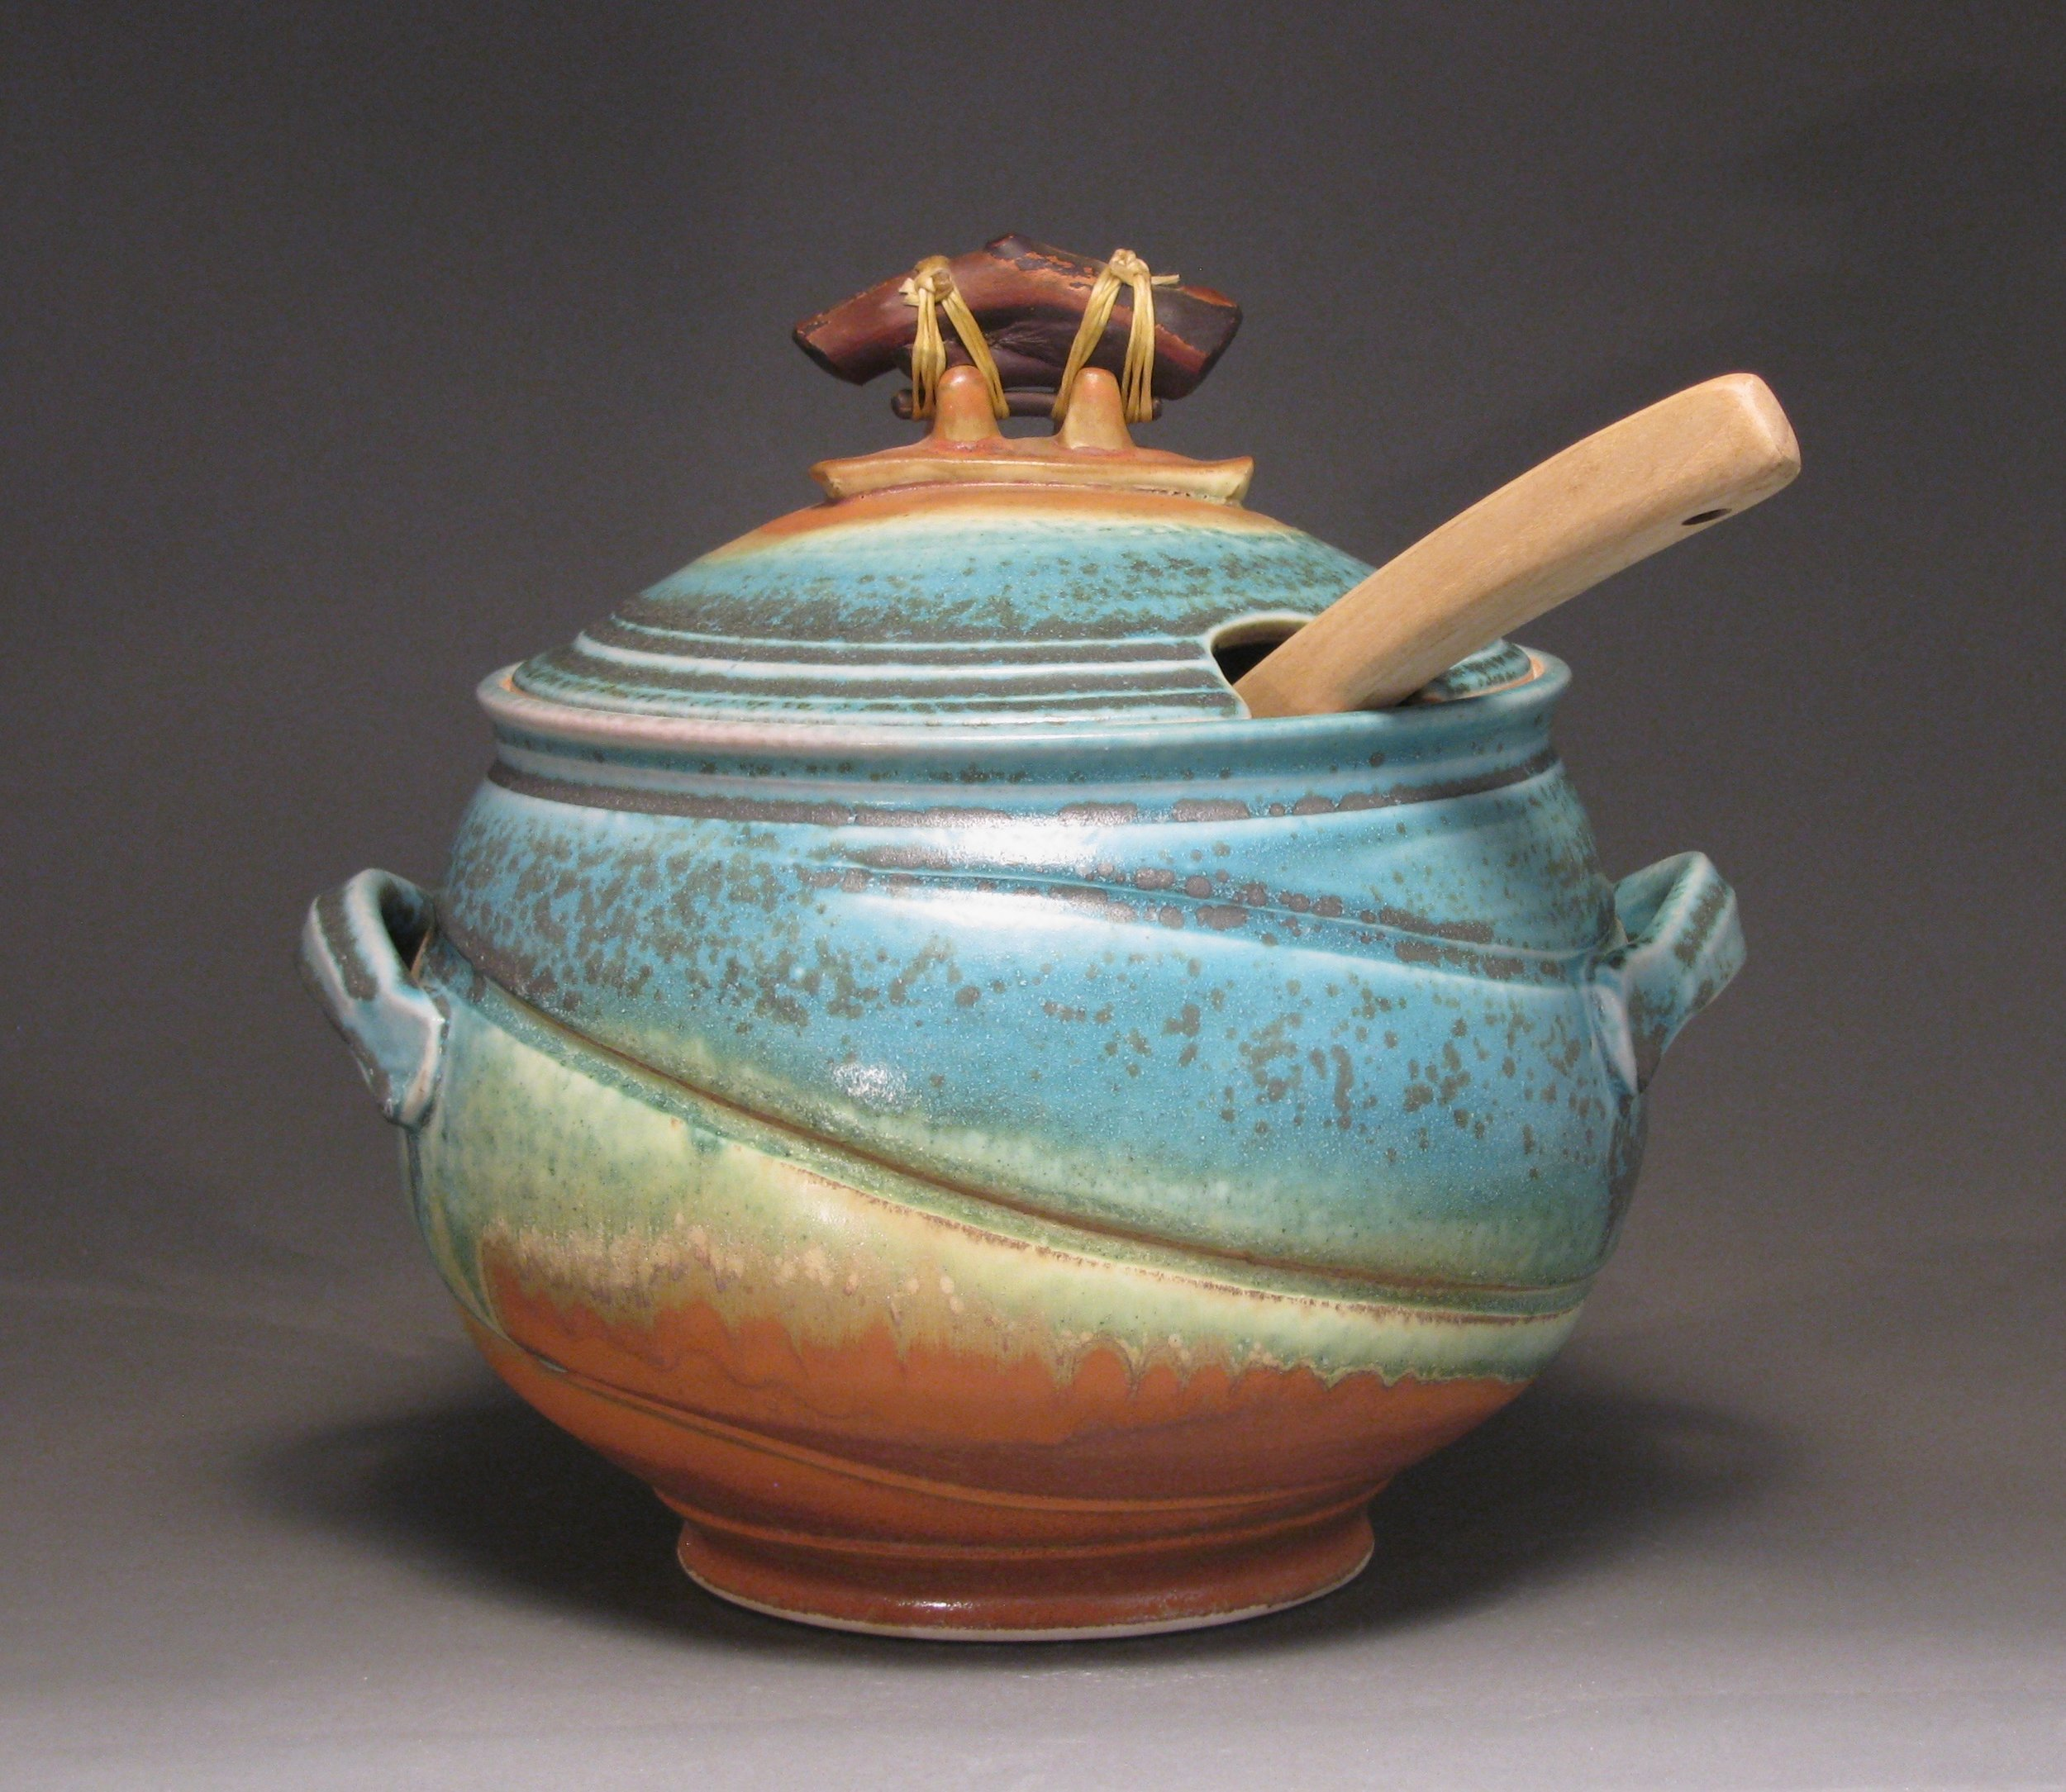 Soup tureen with matte turquoise and rust glazes